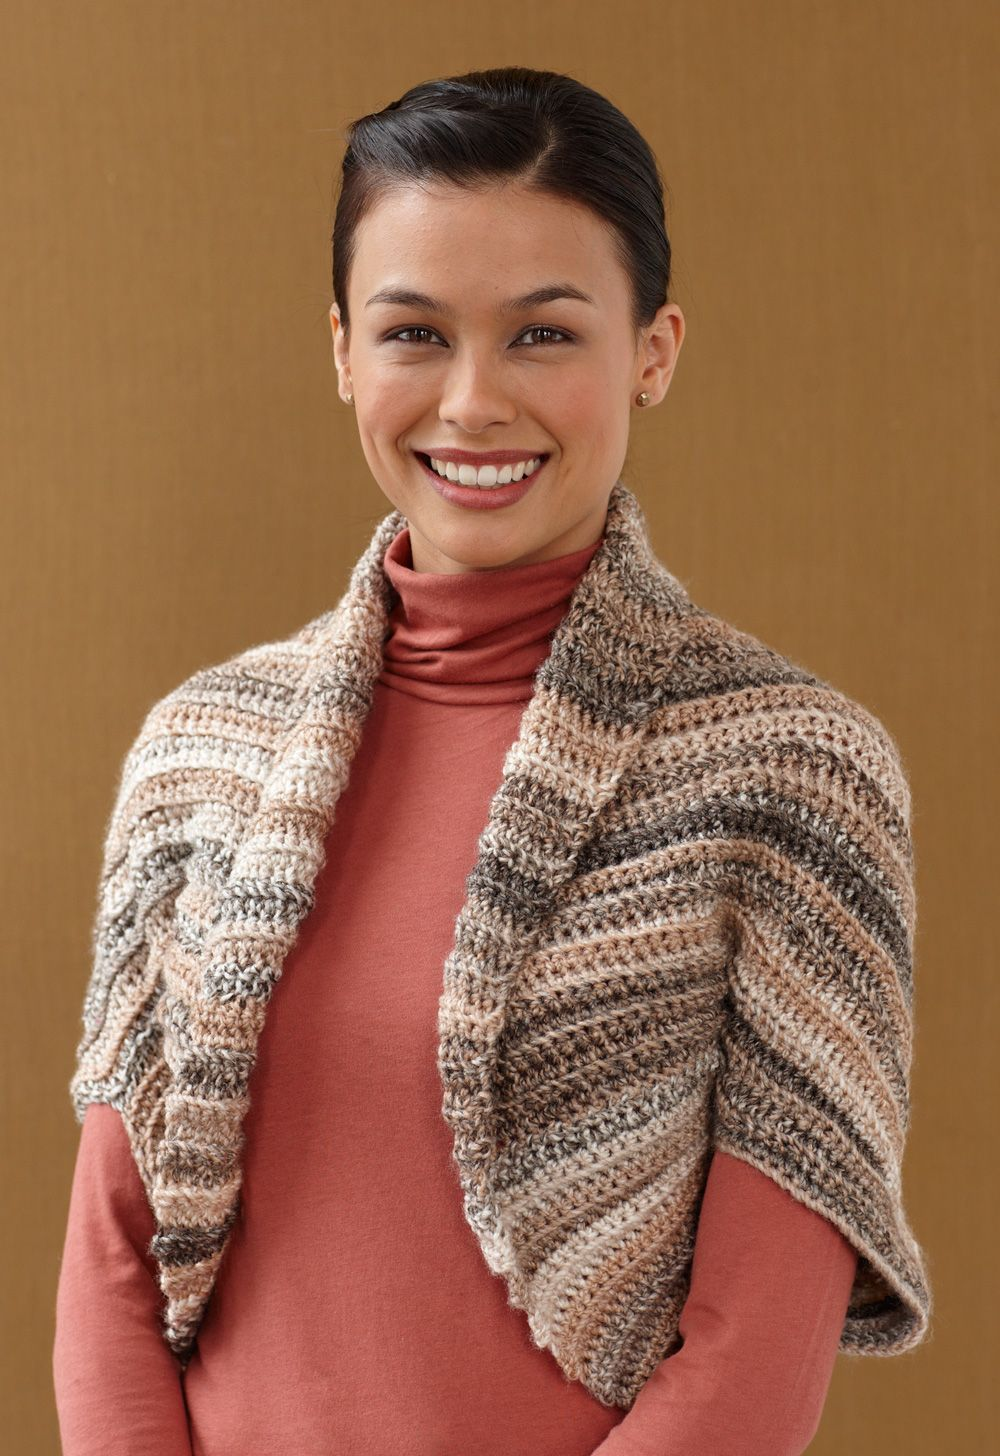 Over 5 000 Free Patterns On Lionbrand Com Crochet Shrug Pattern Free Crochet Shrug Pattern Crochet Shrug